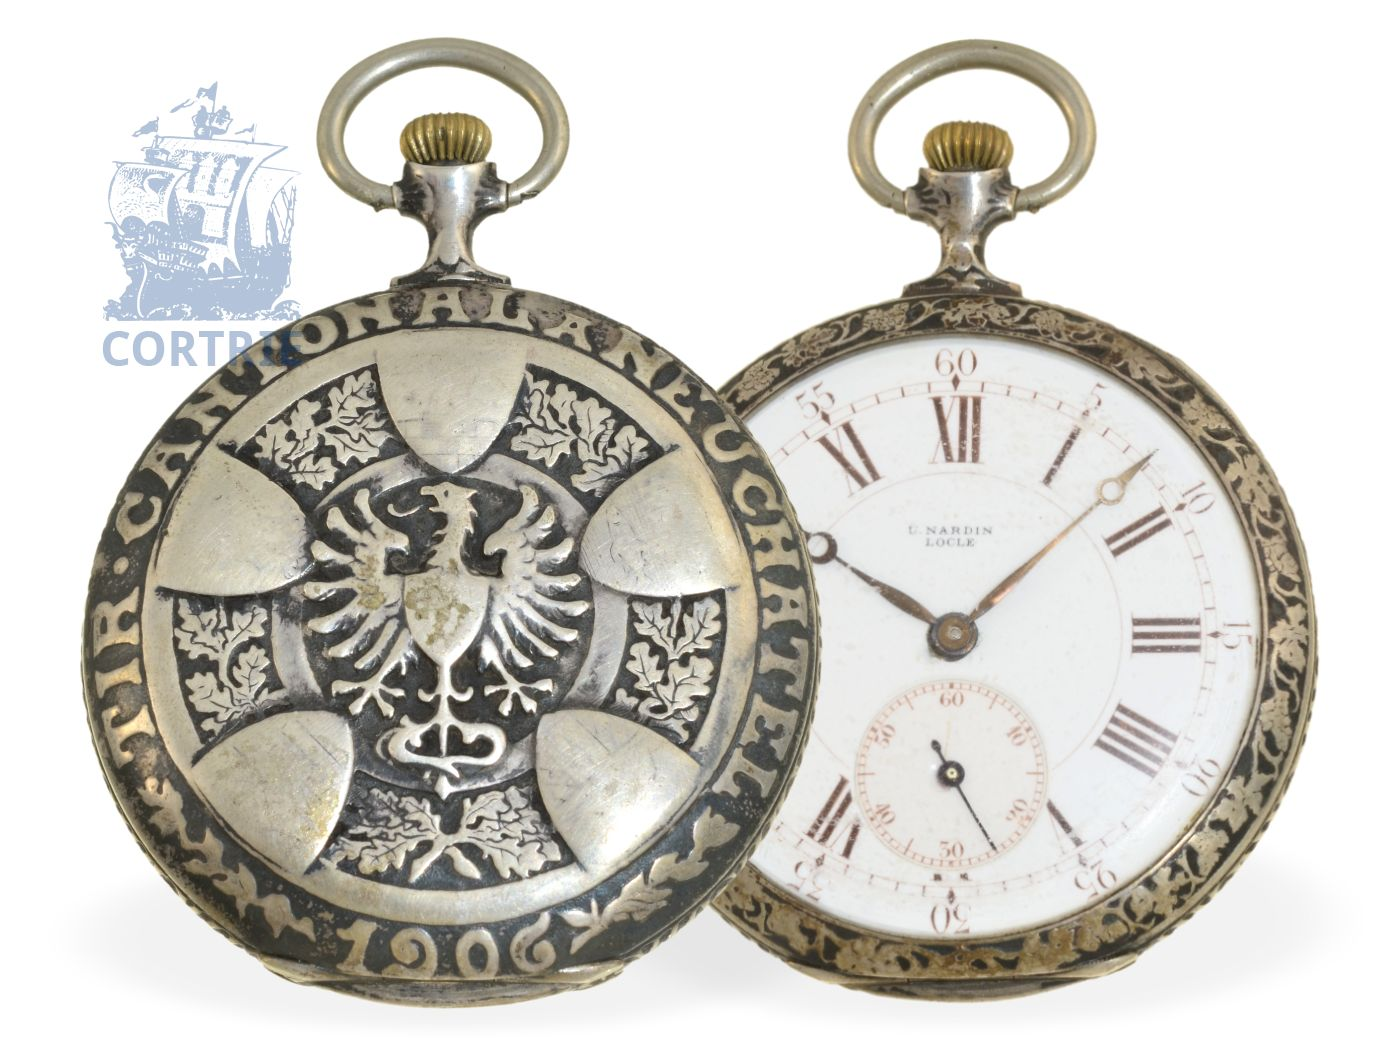 Pocket watch: very rare Art Nouveau marksman watch Tir Cantonal a Neuchatel 1906, fine precision lever movement Ulysse Nardin Locle-